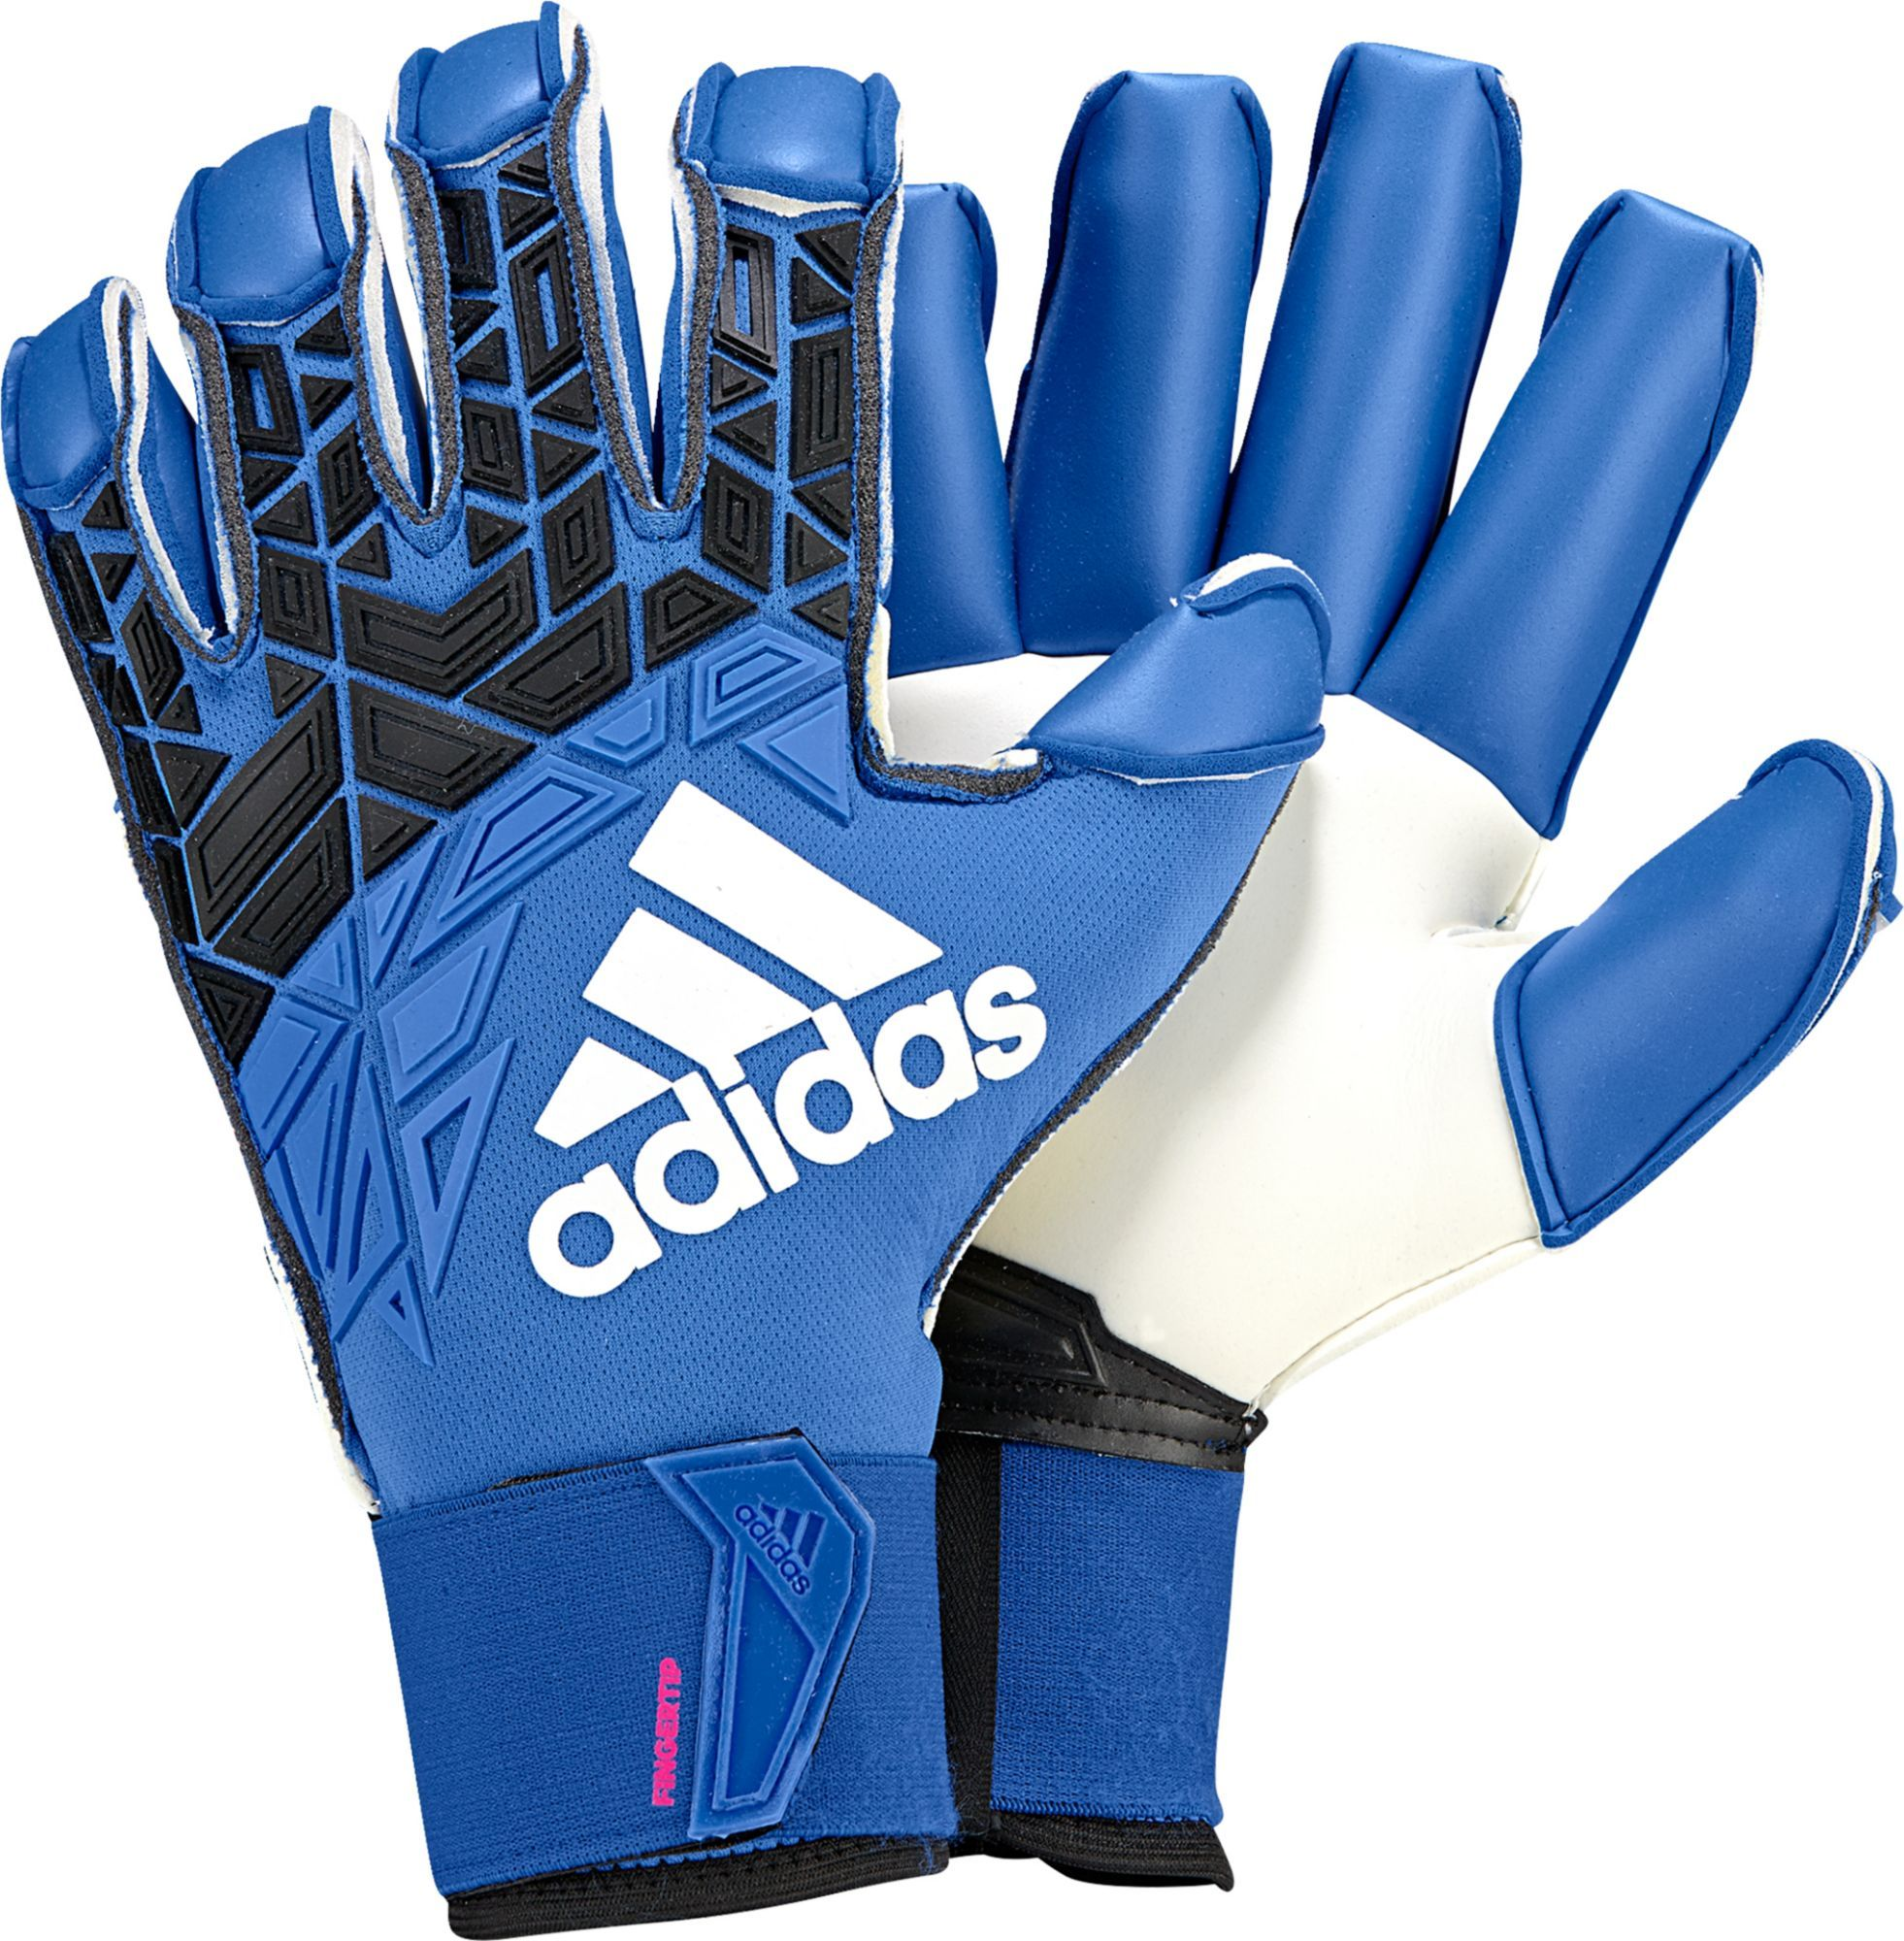 Pin by csnon on Goal keeper | Goalie gloves, Gloves, Keeper